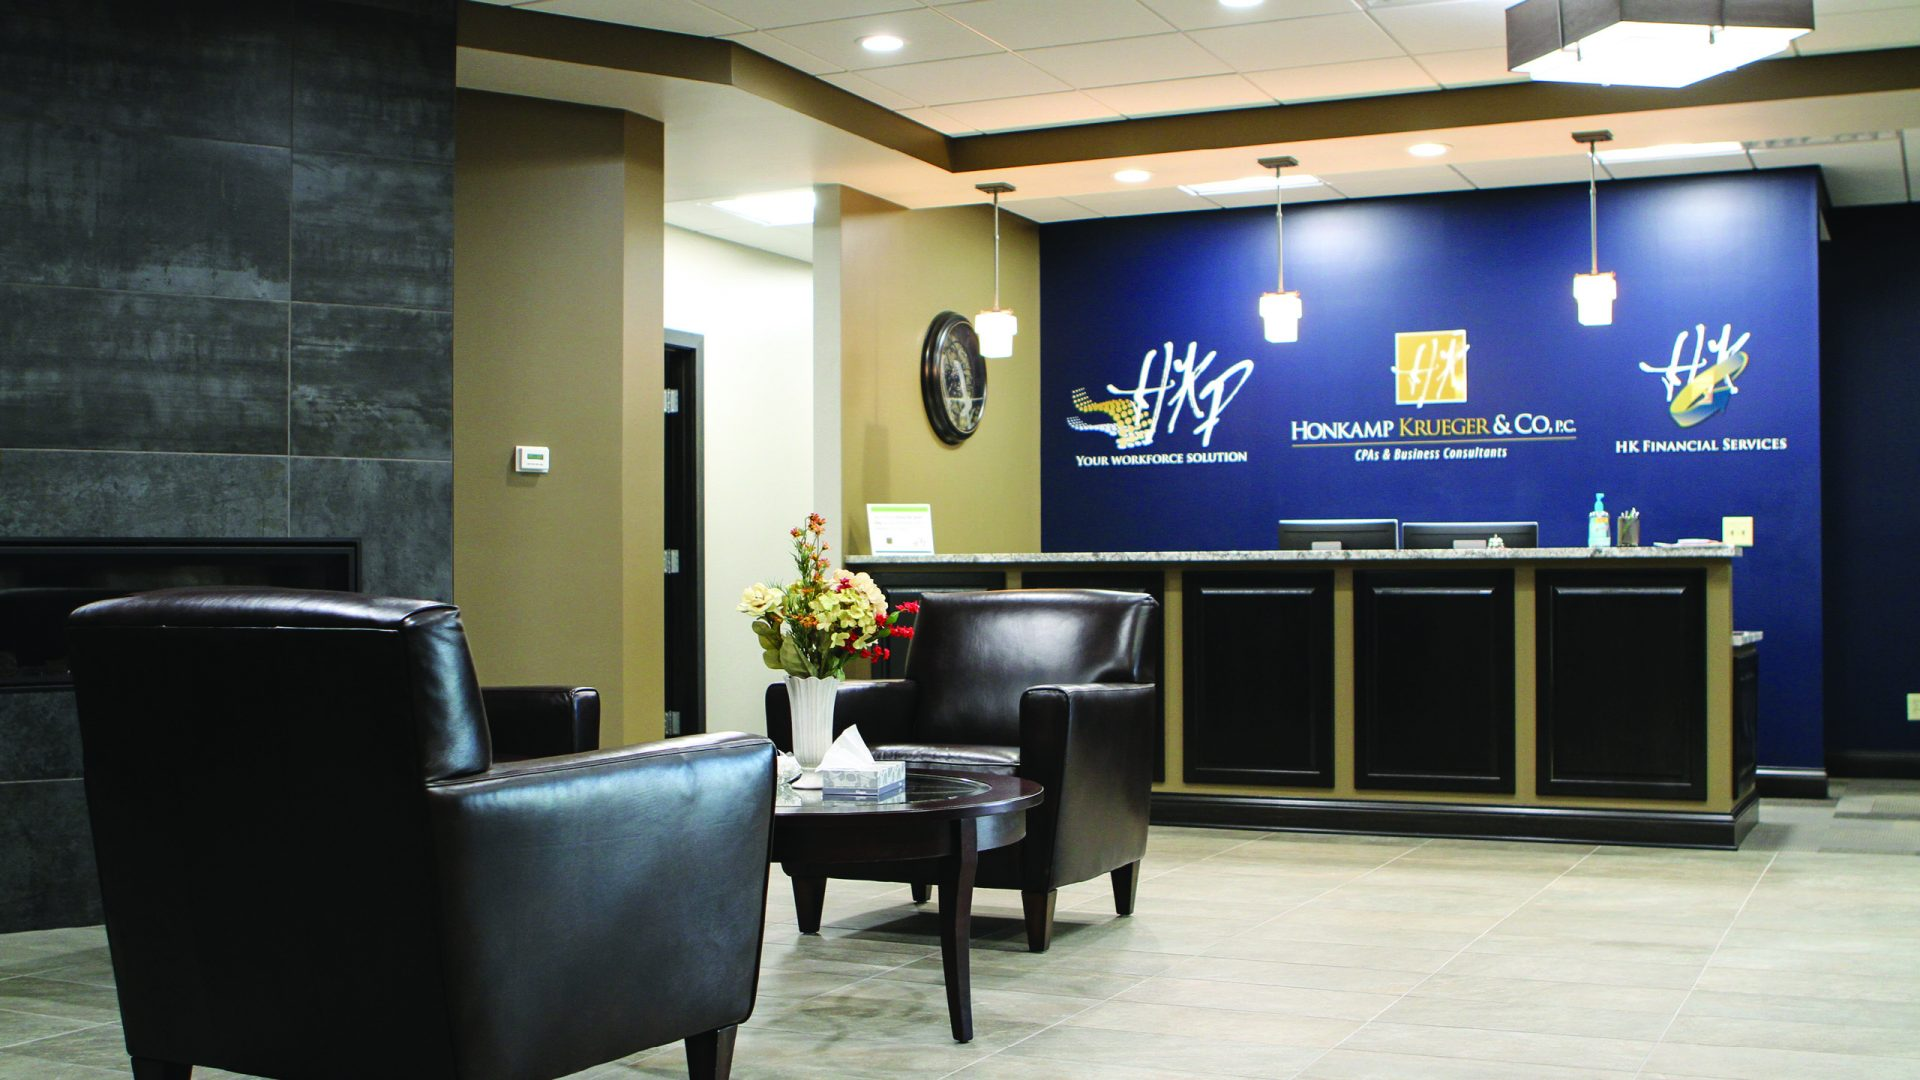 two black chairs in the lobby of Honkamp Krueger and there is a royal blue wall behind the front desk